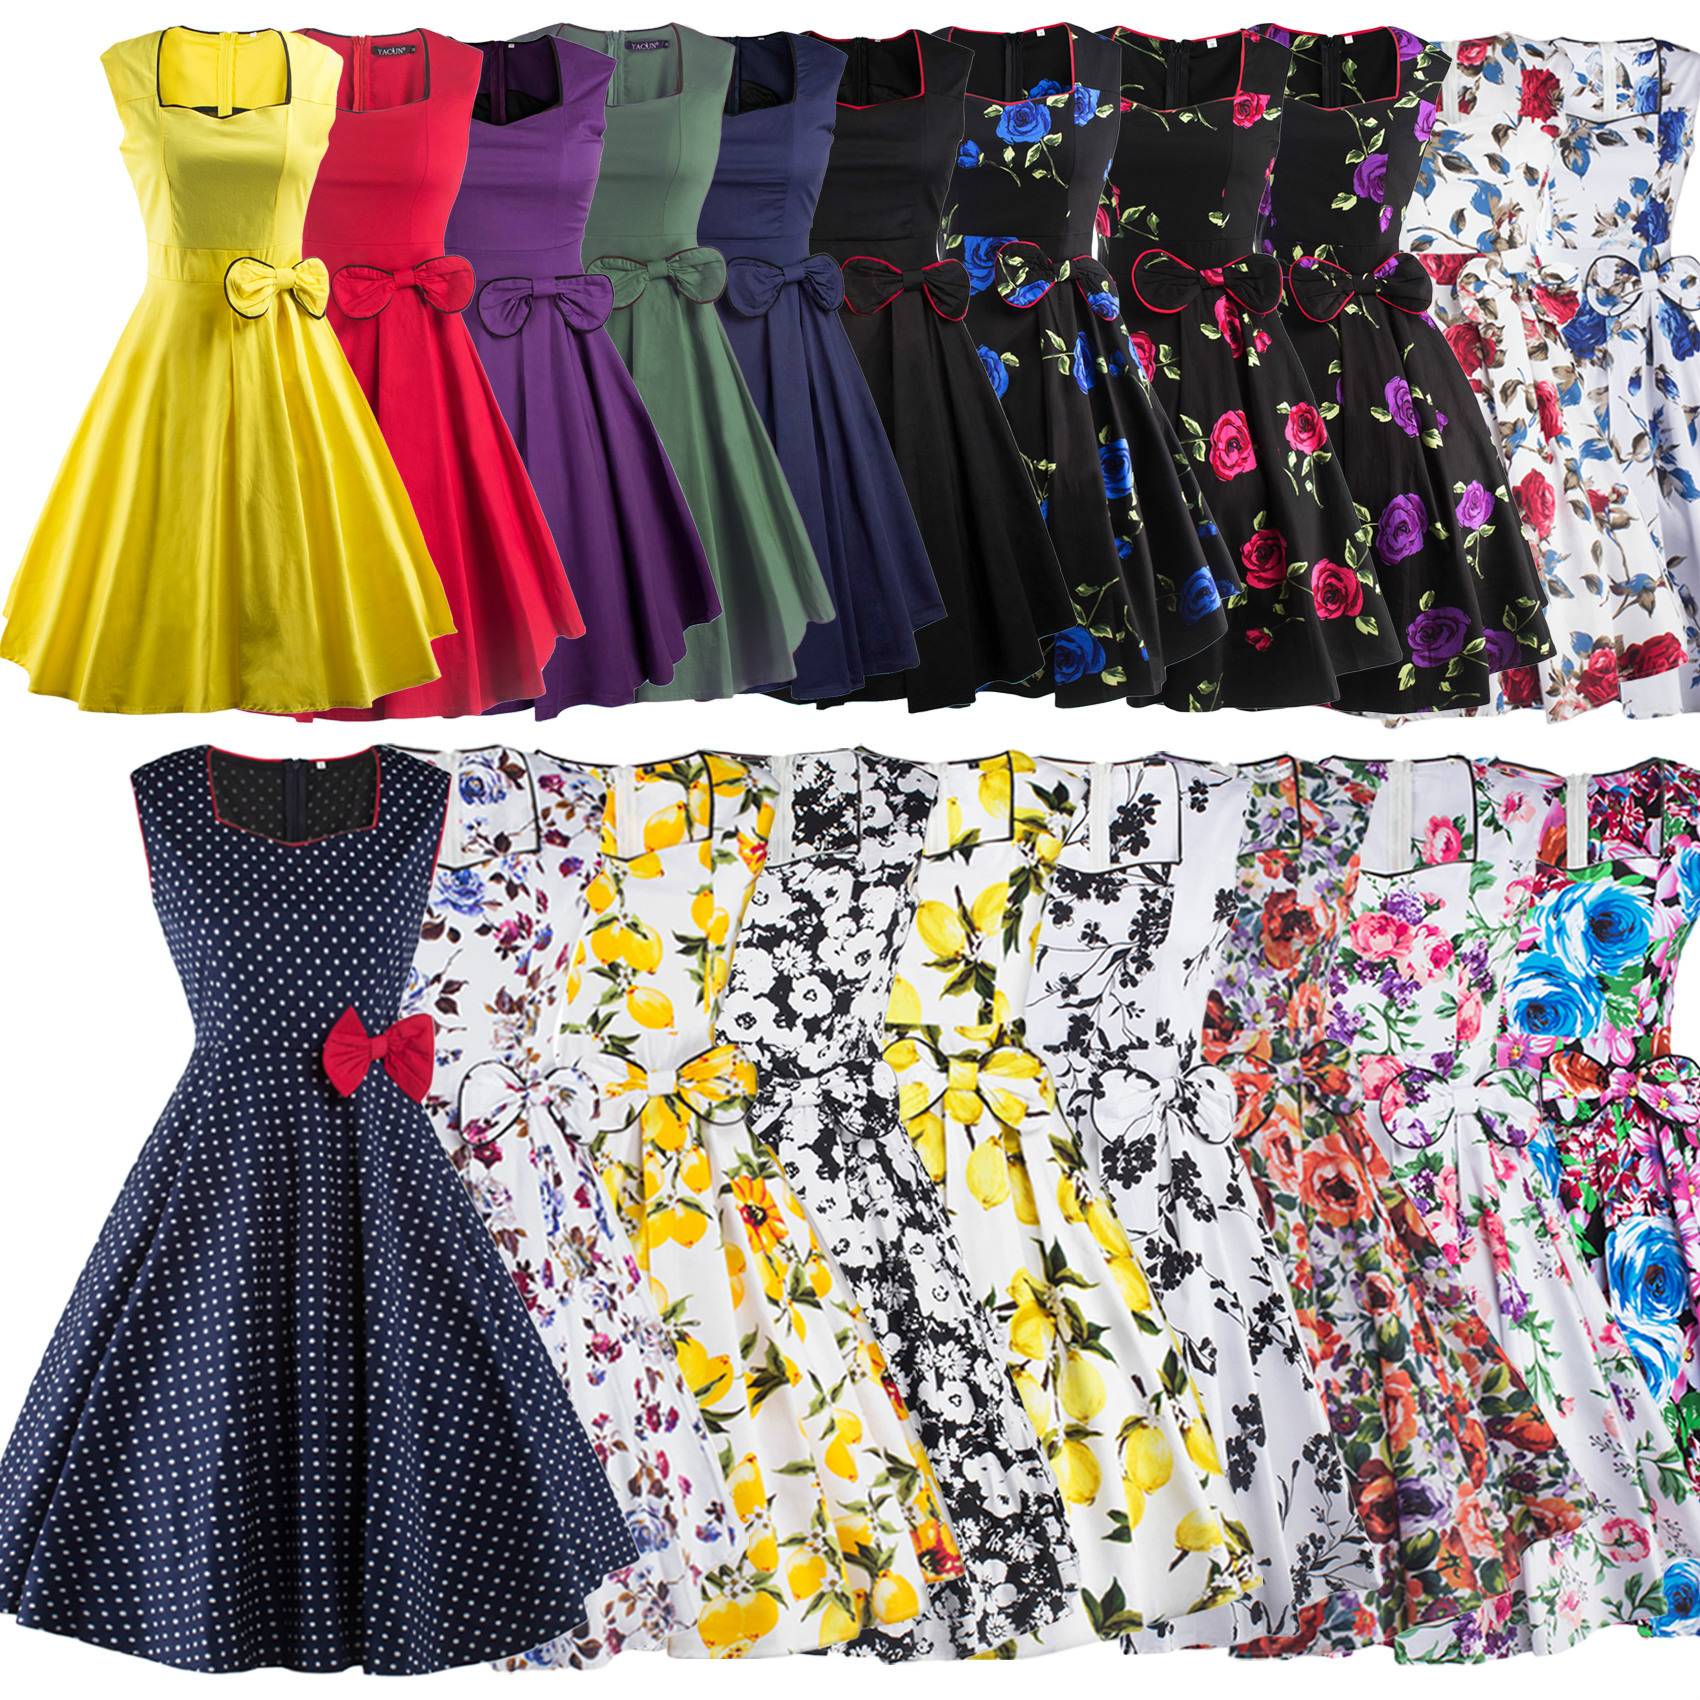 Buy 1950s dresses and get free shipping on AliExpress.com 9a925cf1ae49